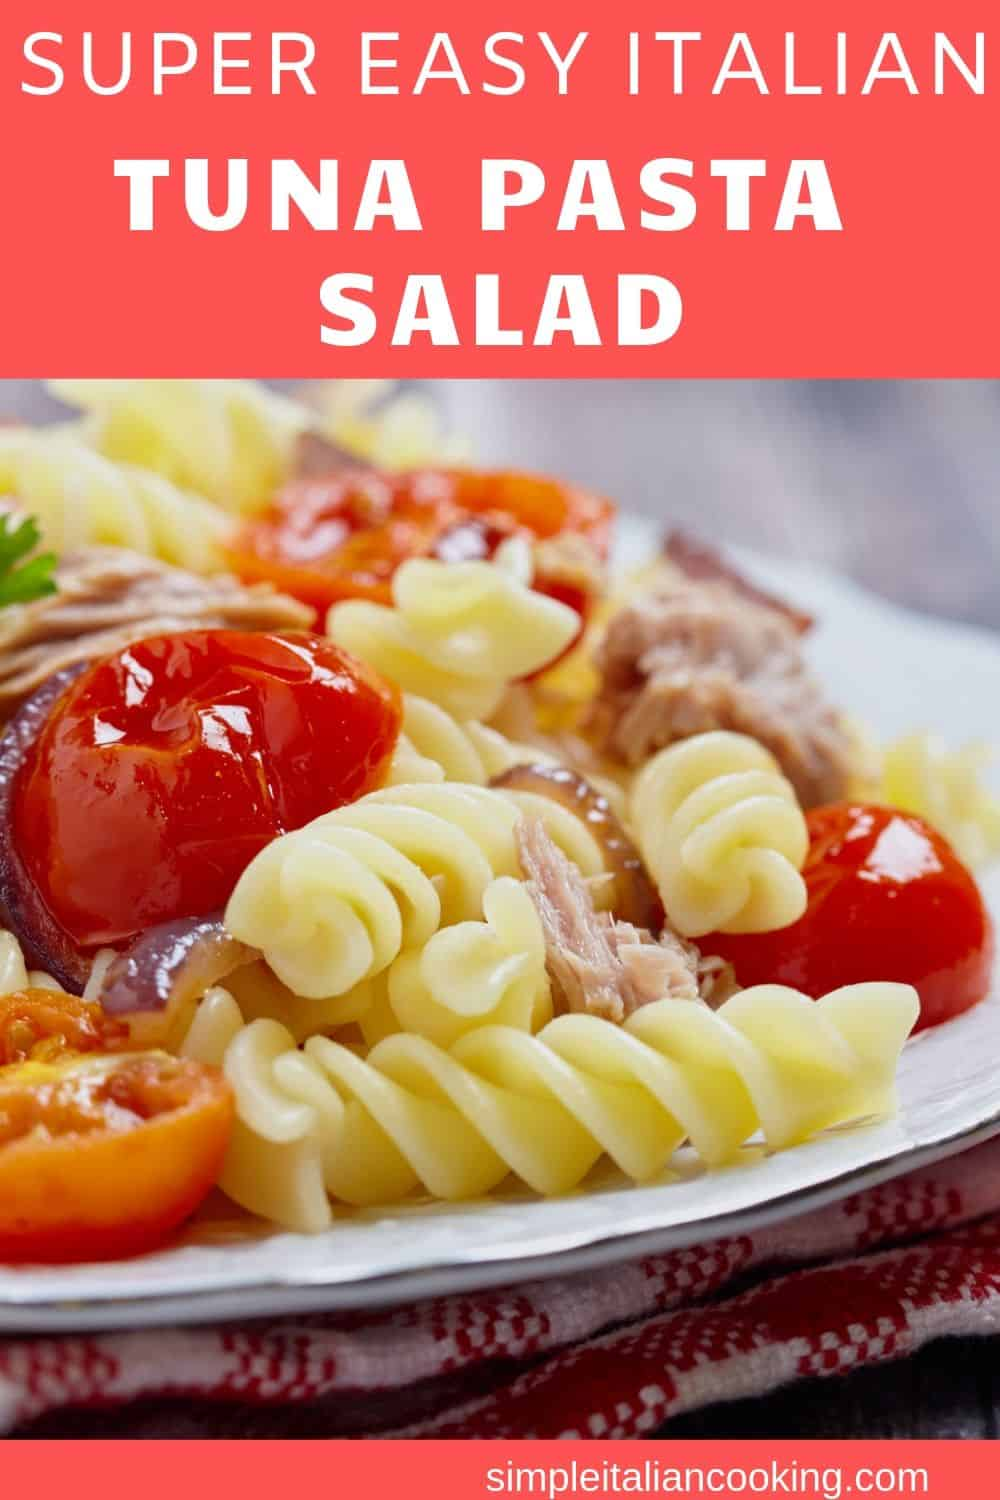 How To Make Italian Tuna Pasta Salad Recipe